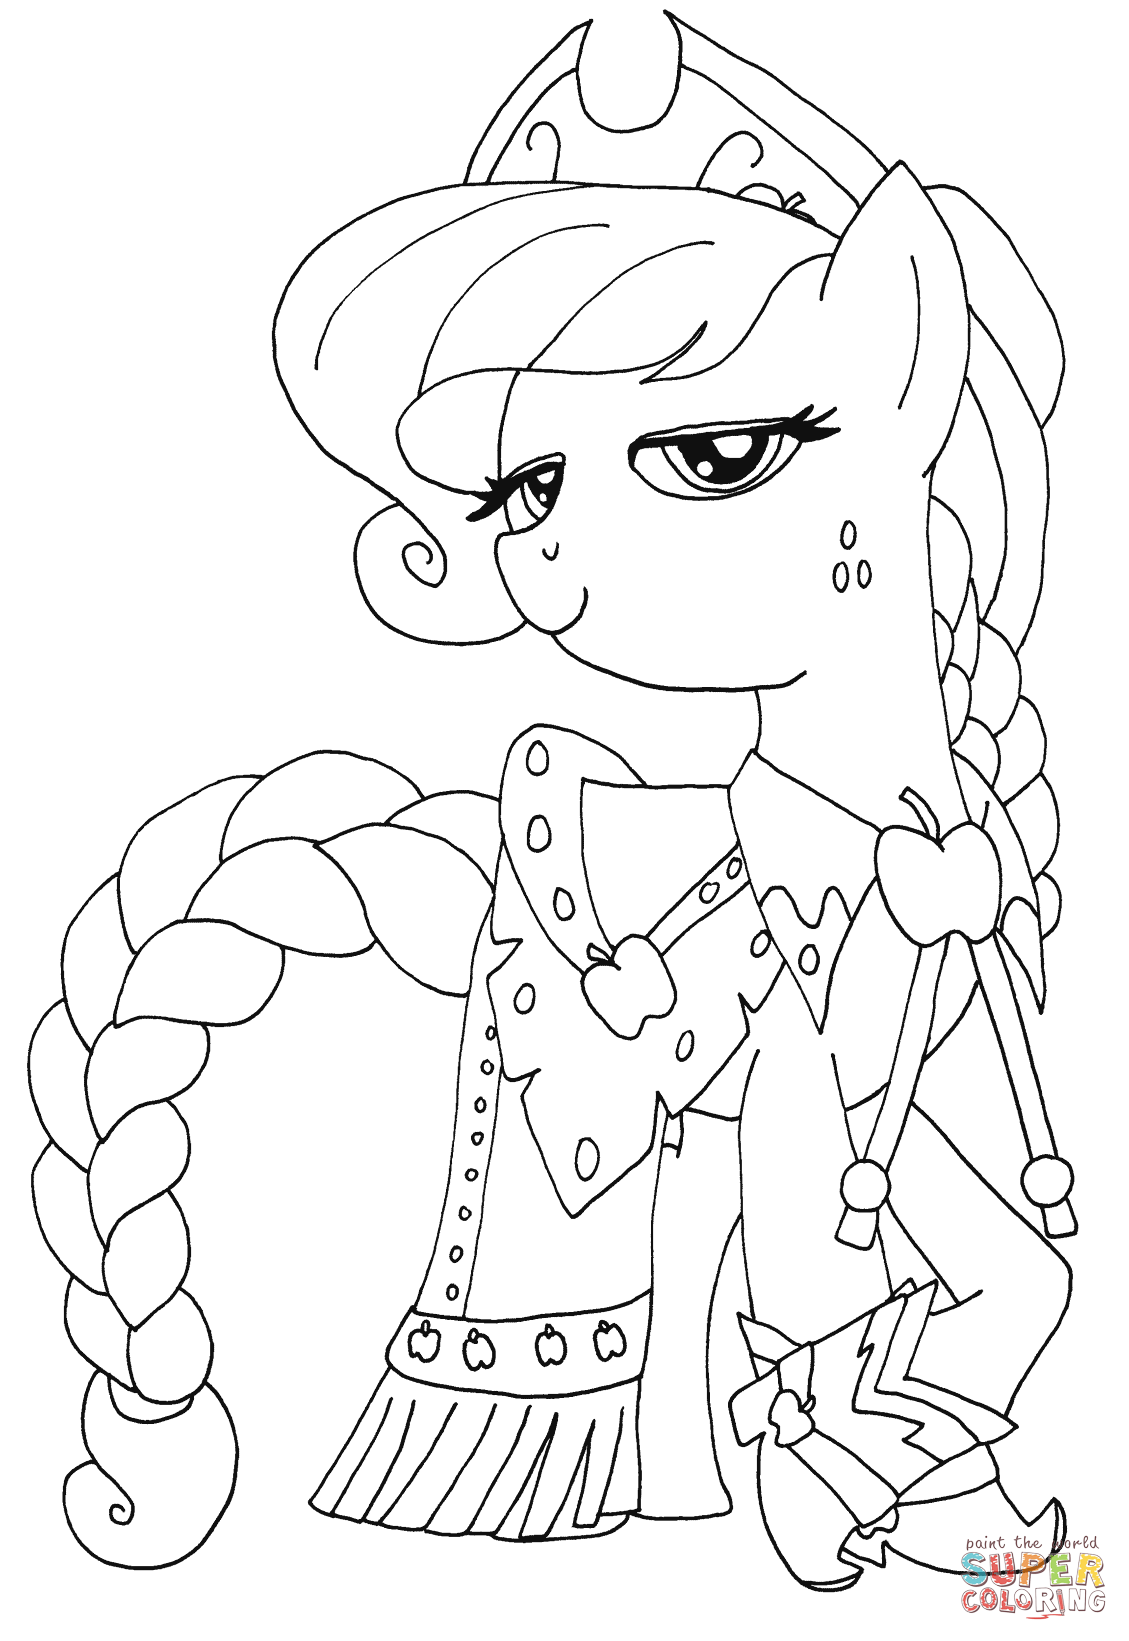 Ausmalbilder My Little Pony Equestria : My Little Pony Coloring Pages Pony Coloring Pages Mlp Coloring Pages